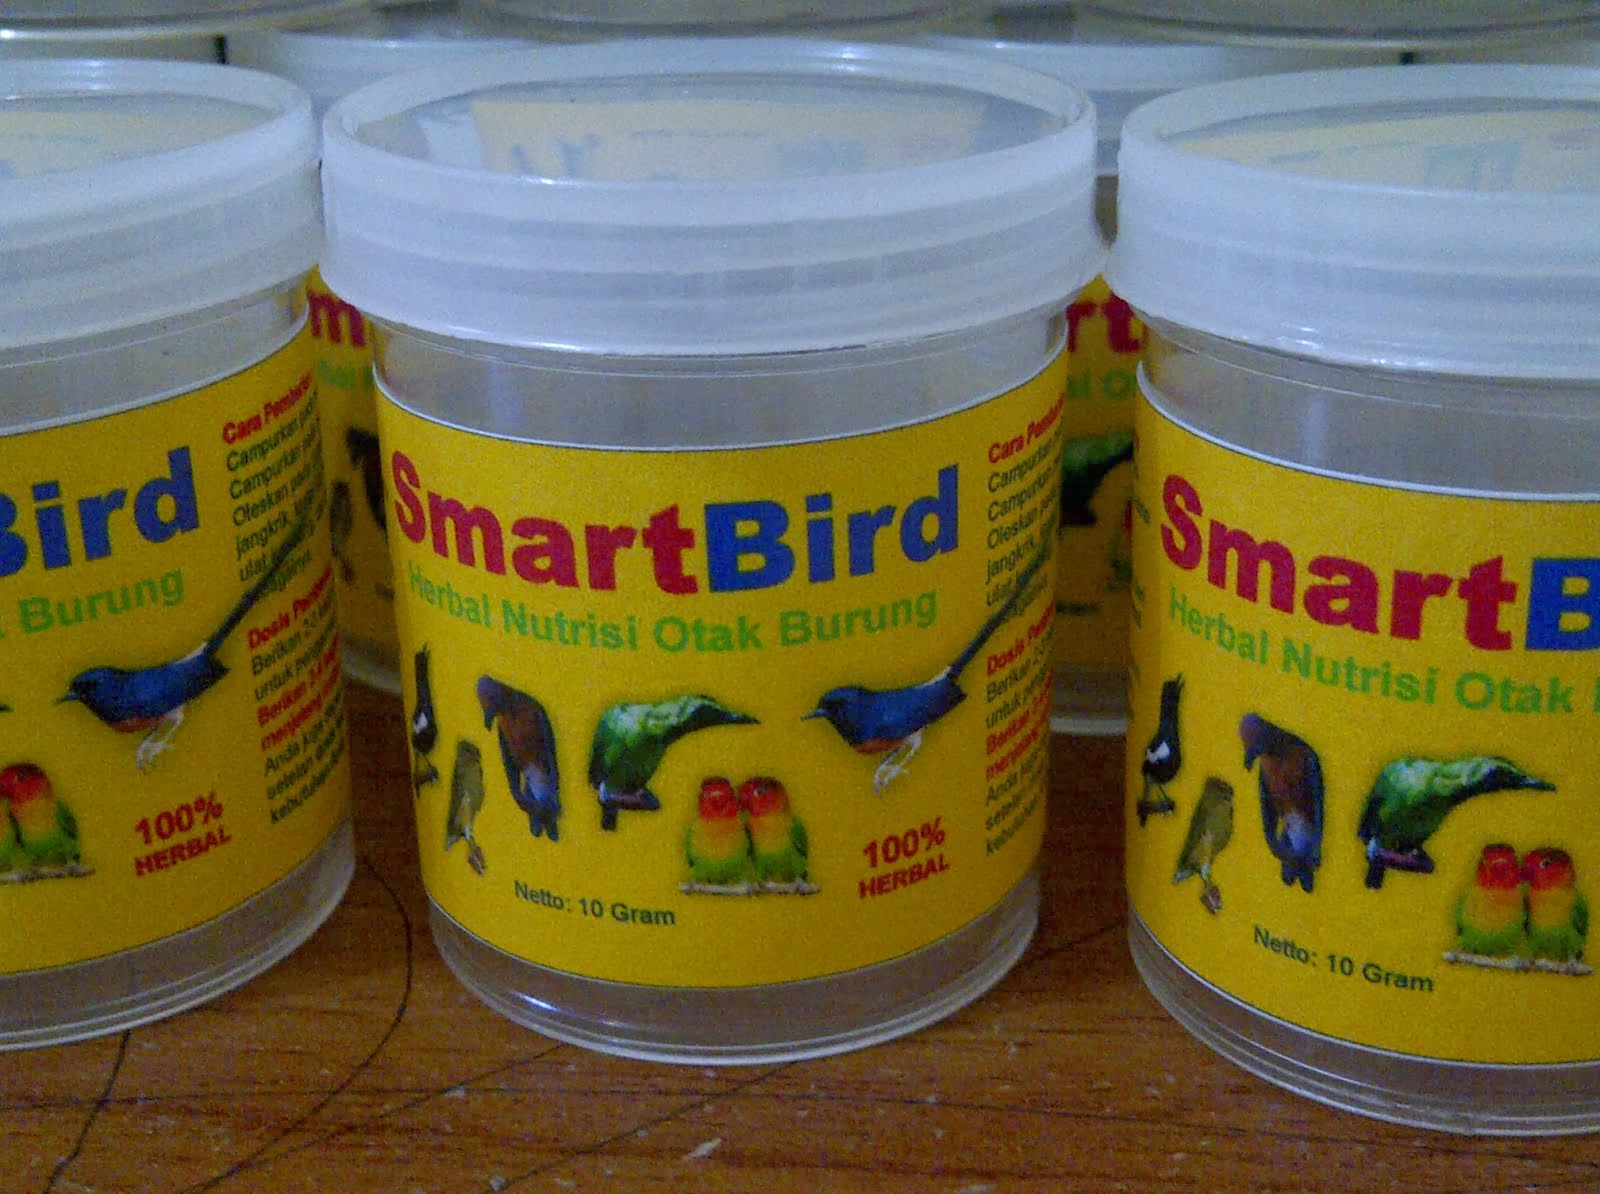 SmartBird Herbal Burung Pintar